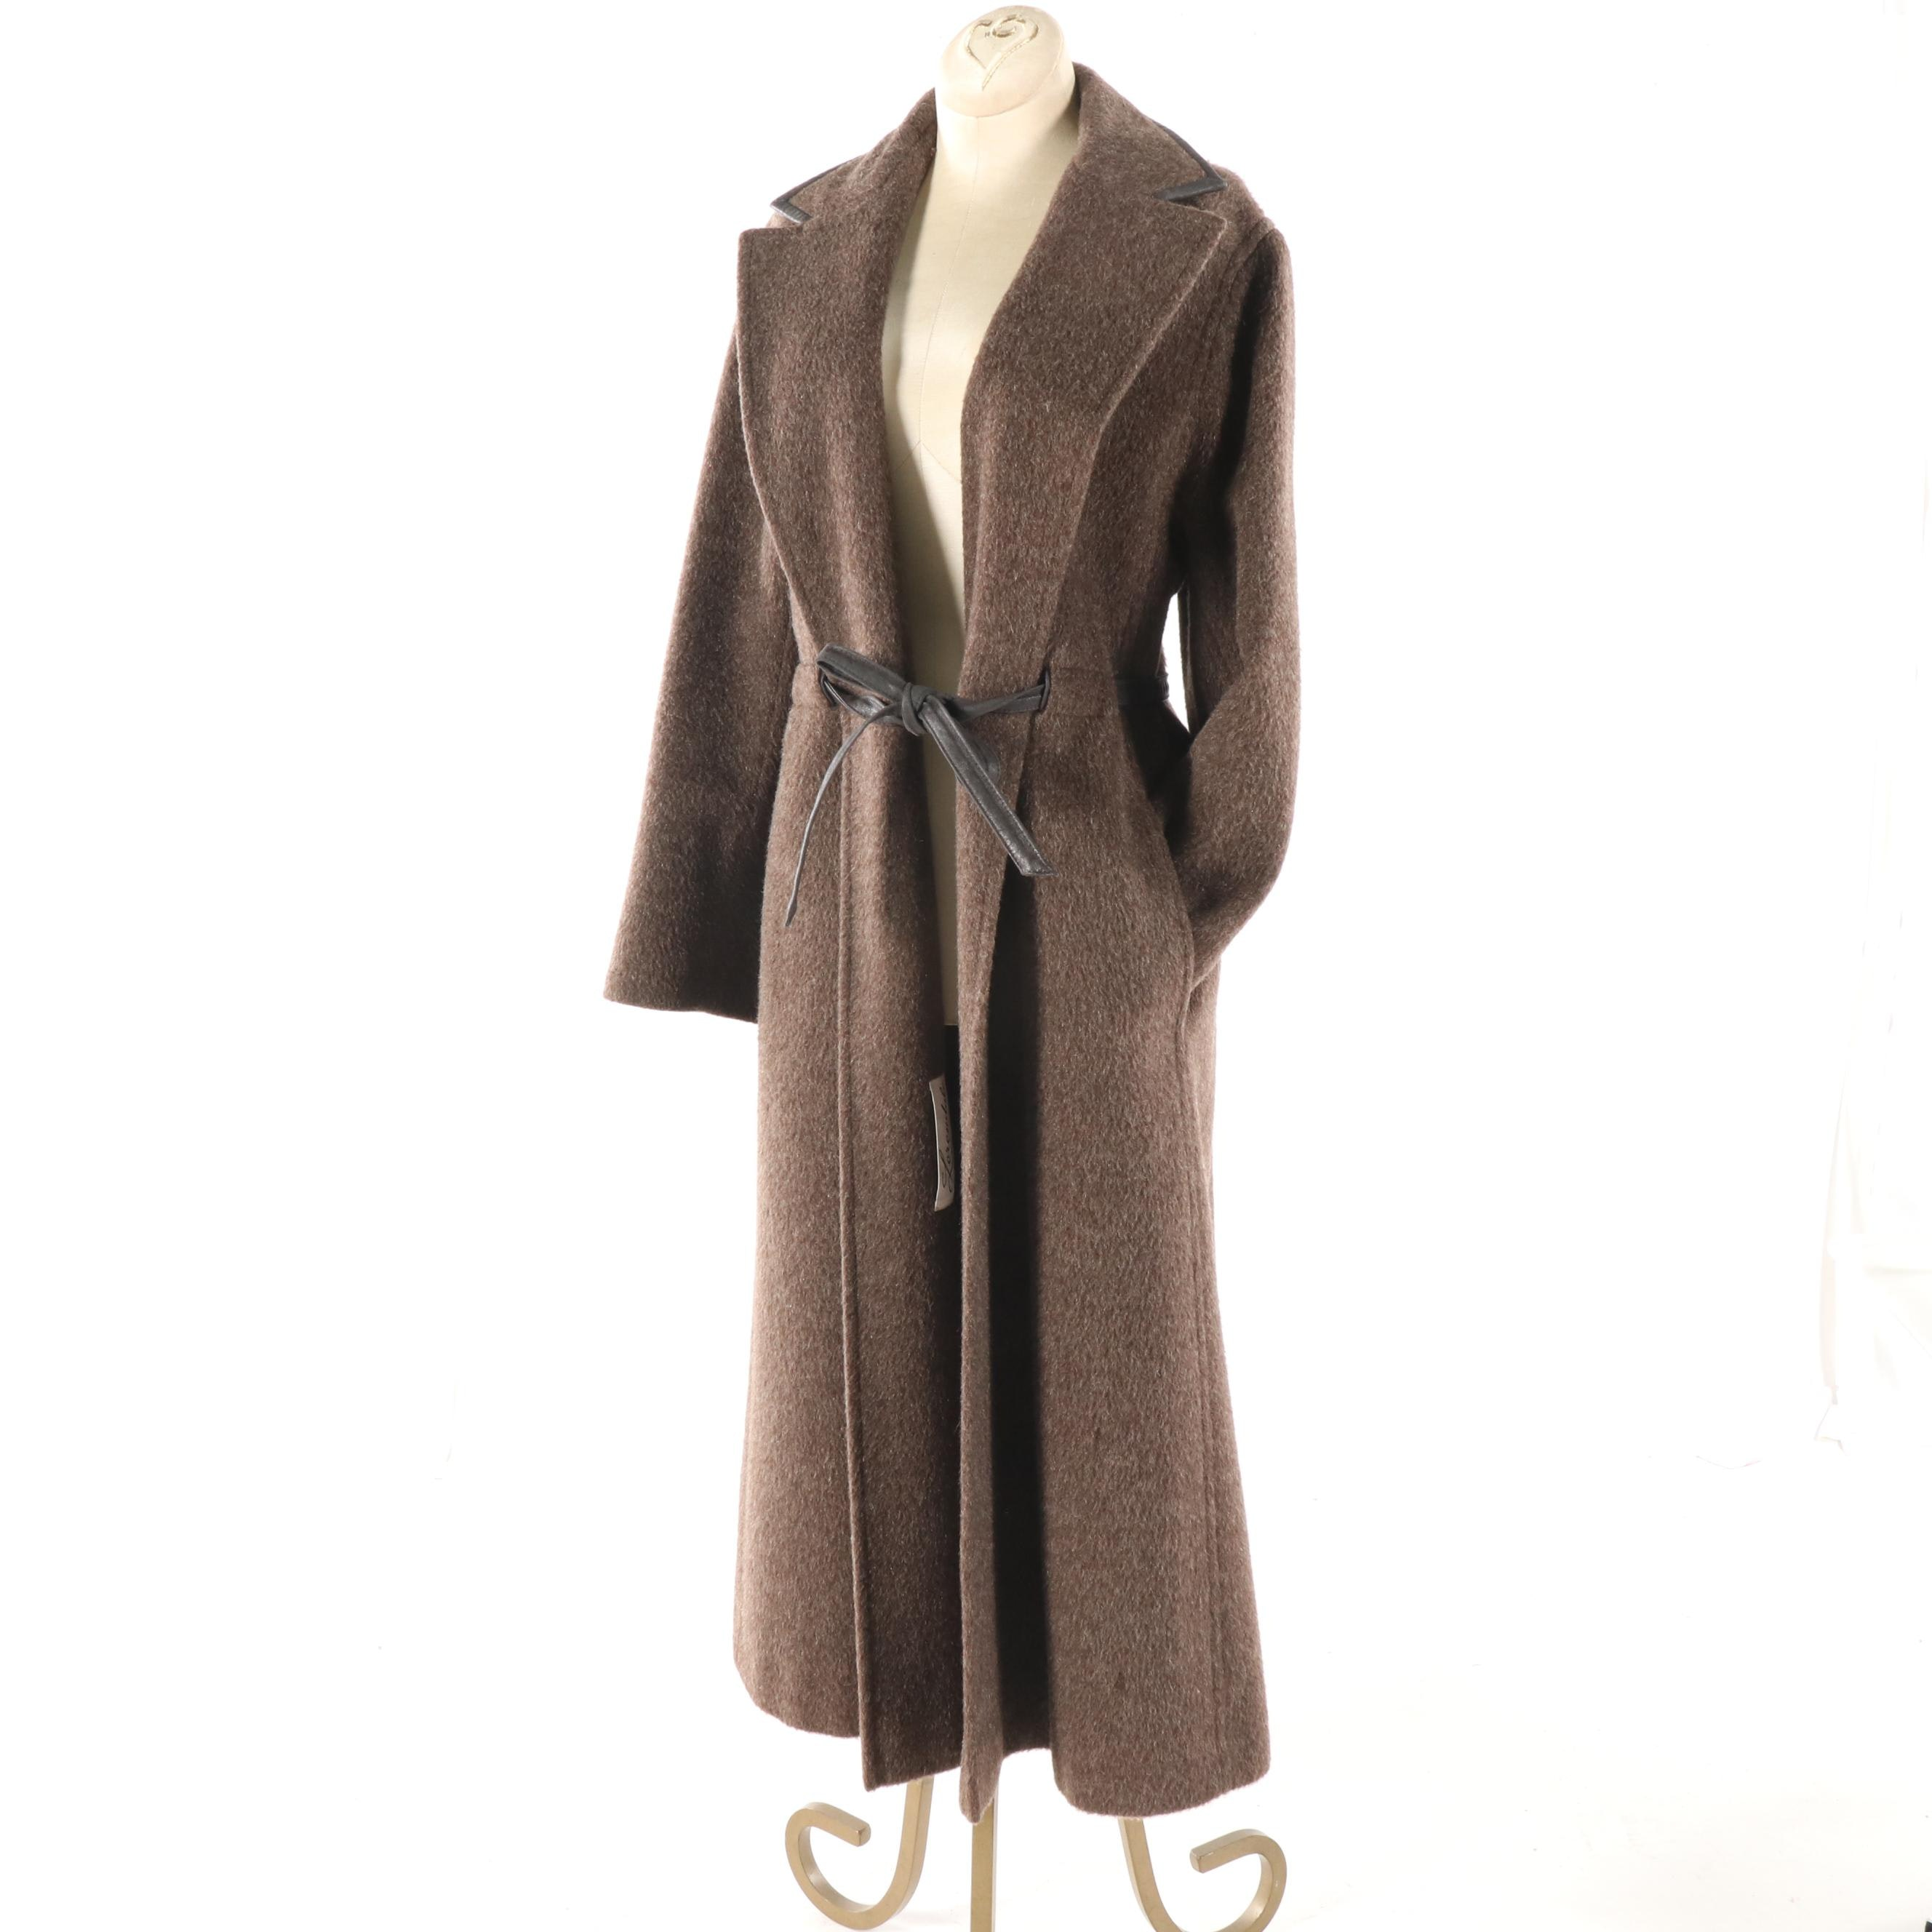 Women's Vintage Lorendale Taupe Wool Coat with Leather Trim and Tie Belt